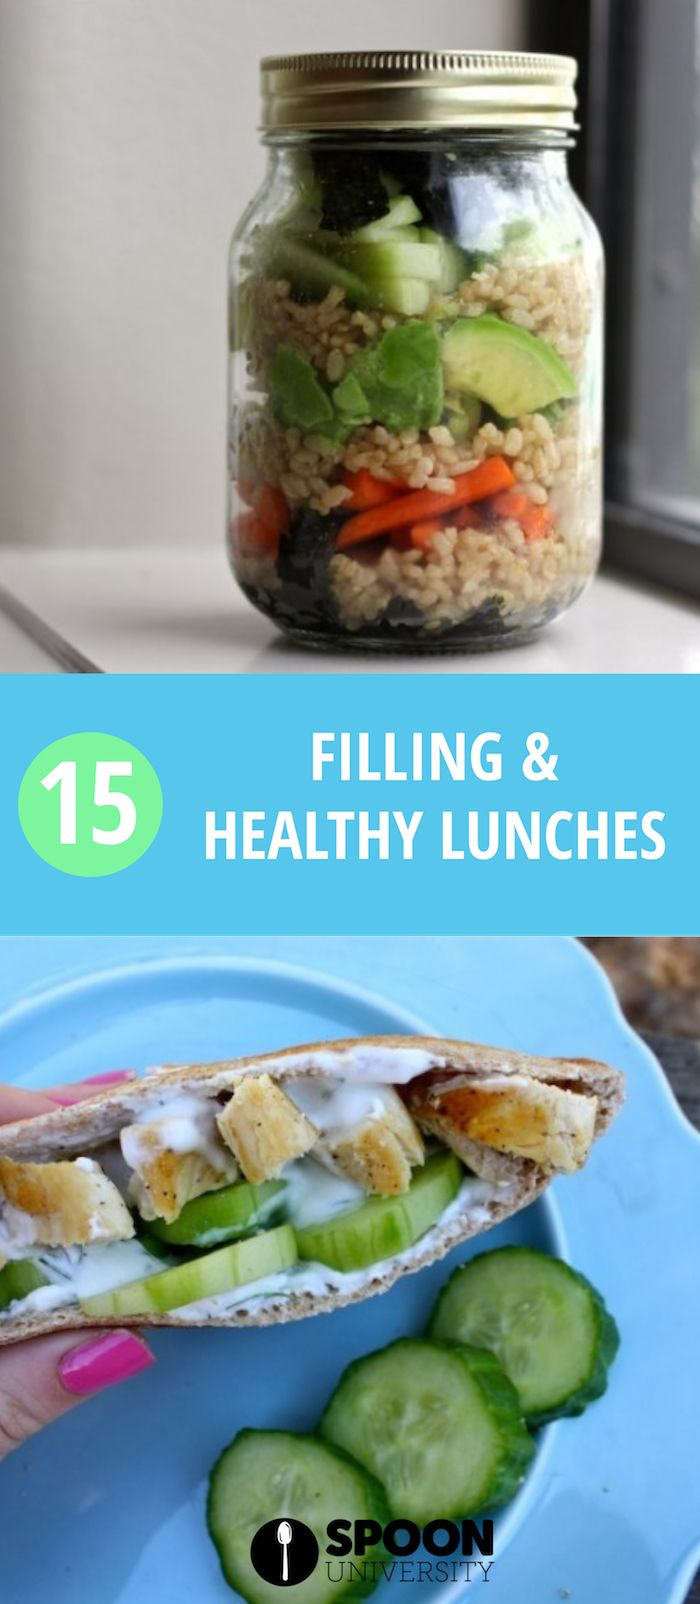 Whipping up one of these healthy meals the night before and you'll feel be full and satisfied throughout your busy day.